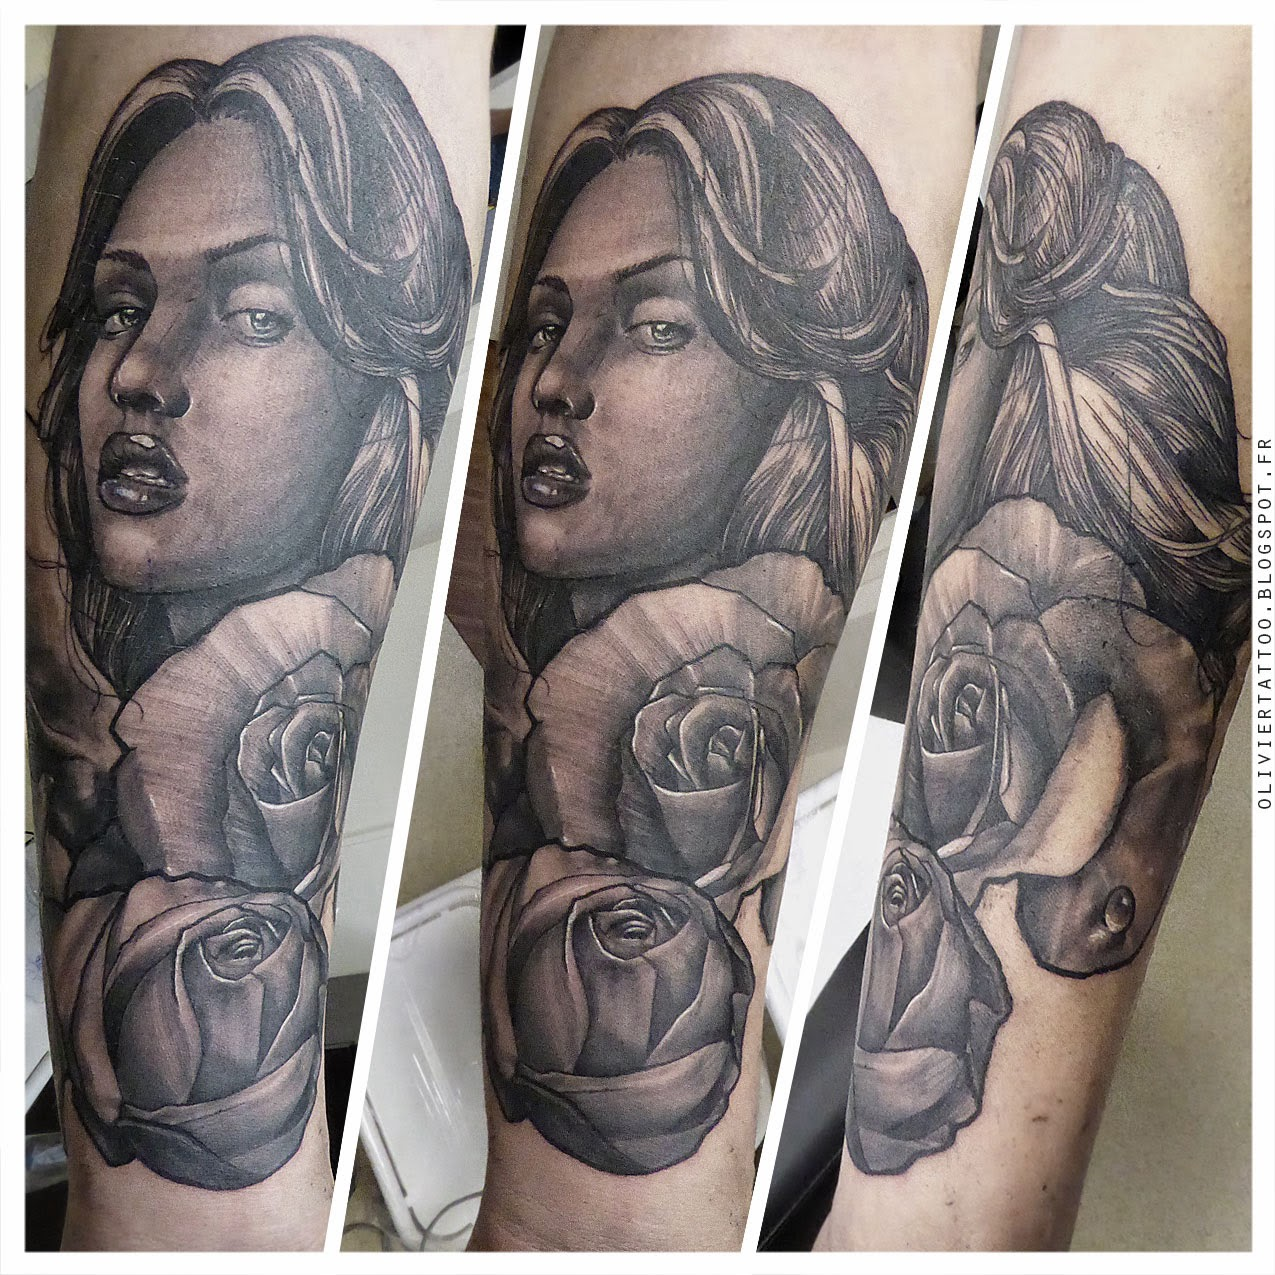 olivier-poinsignon-tatouage-realistes-portrait-woman-black-and-grey-tattoo-amazing